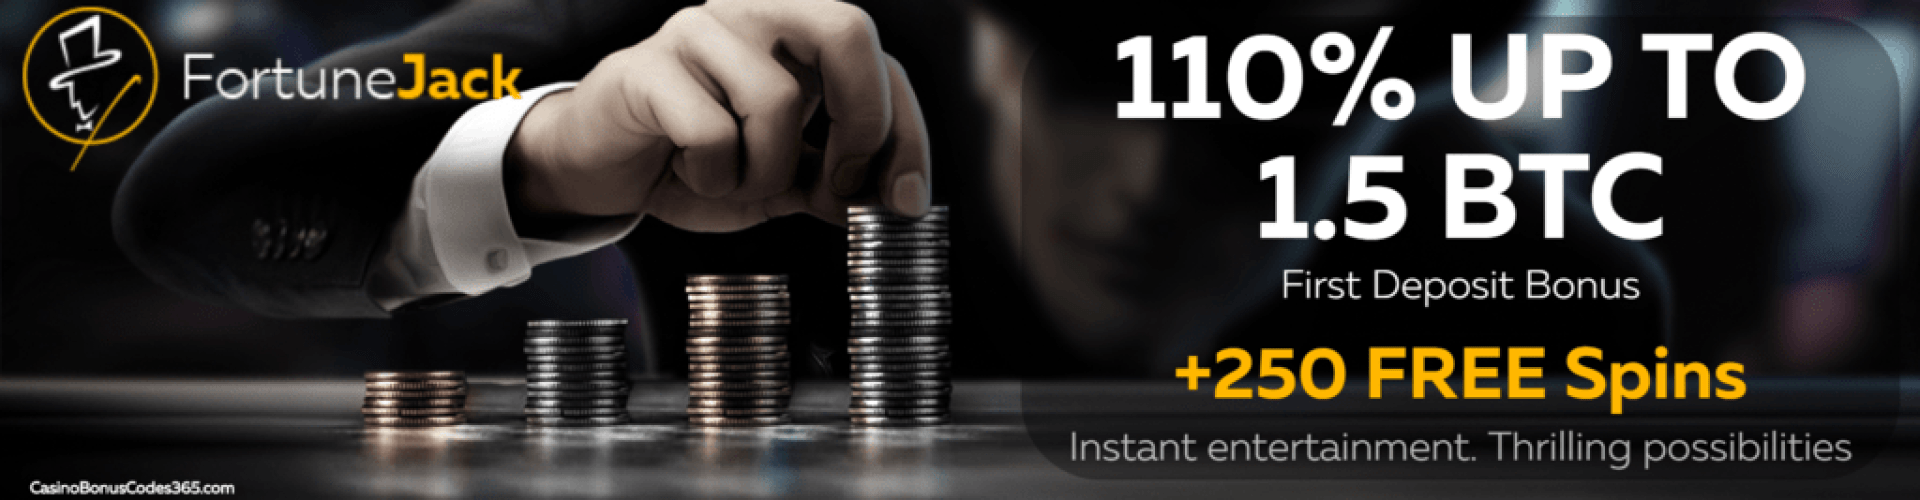 FortuneJack Bitcoin Casino 110% up to 1.5 BTC plus 250 FREE Spins First Deposit Bonus